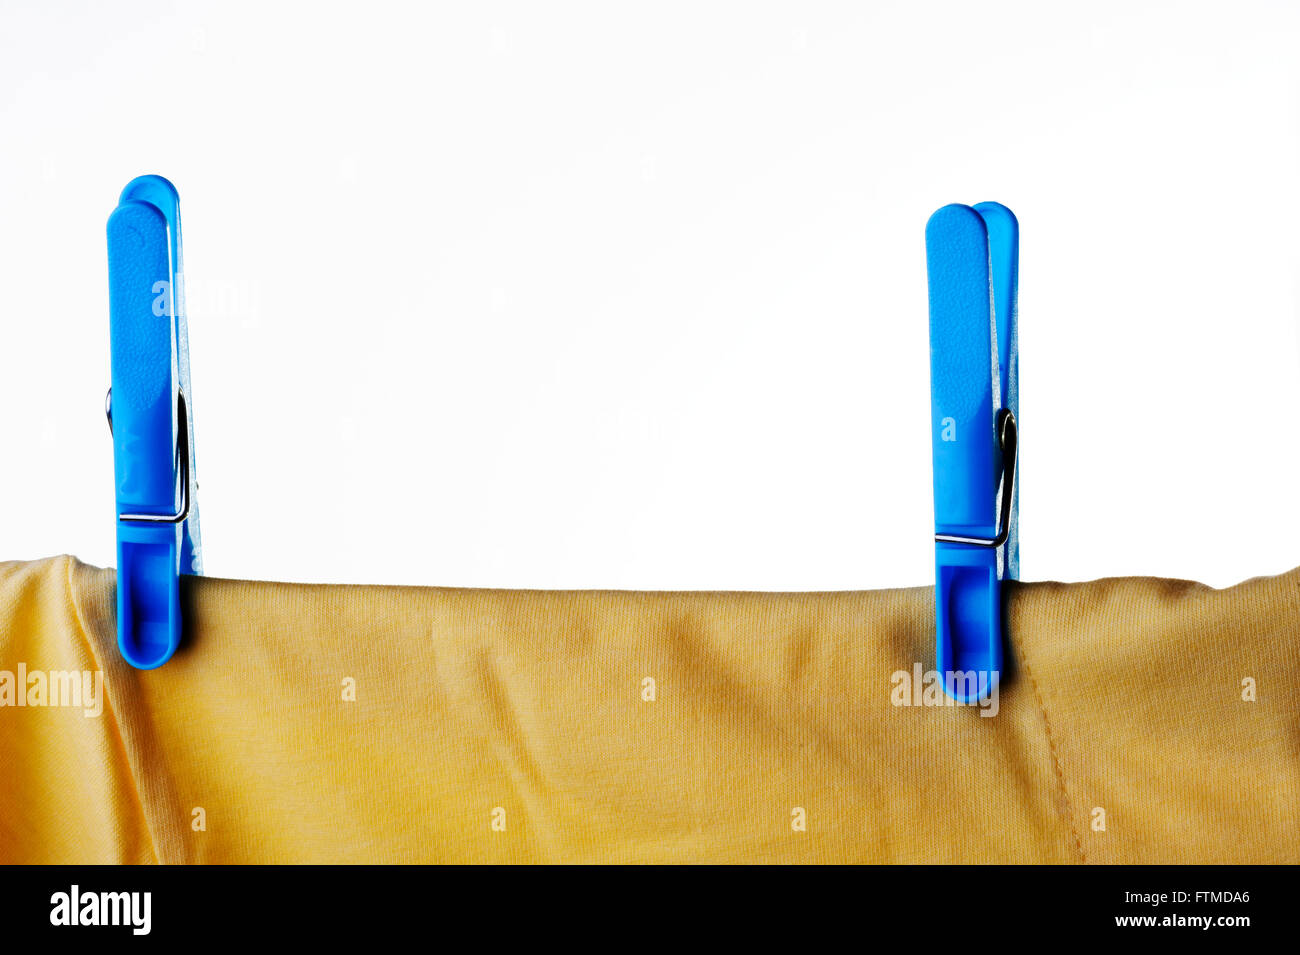 Blue plastic clothes peg or pin securing a yellow t-shirt on clothes line. - Stock Image